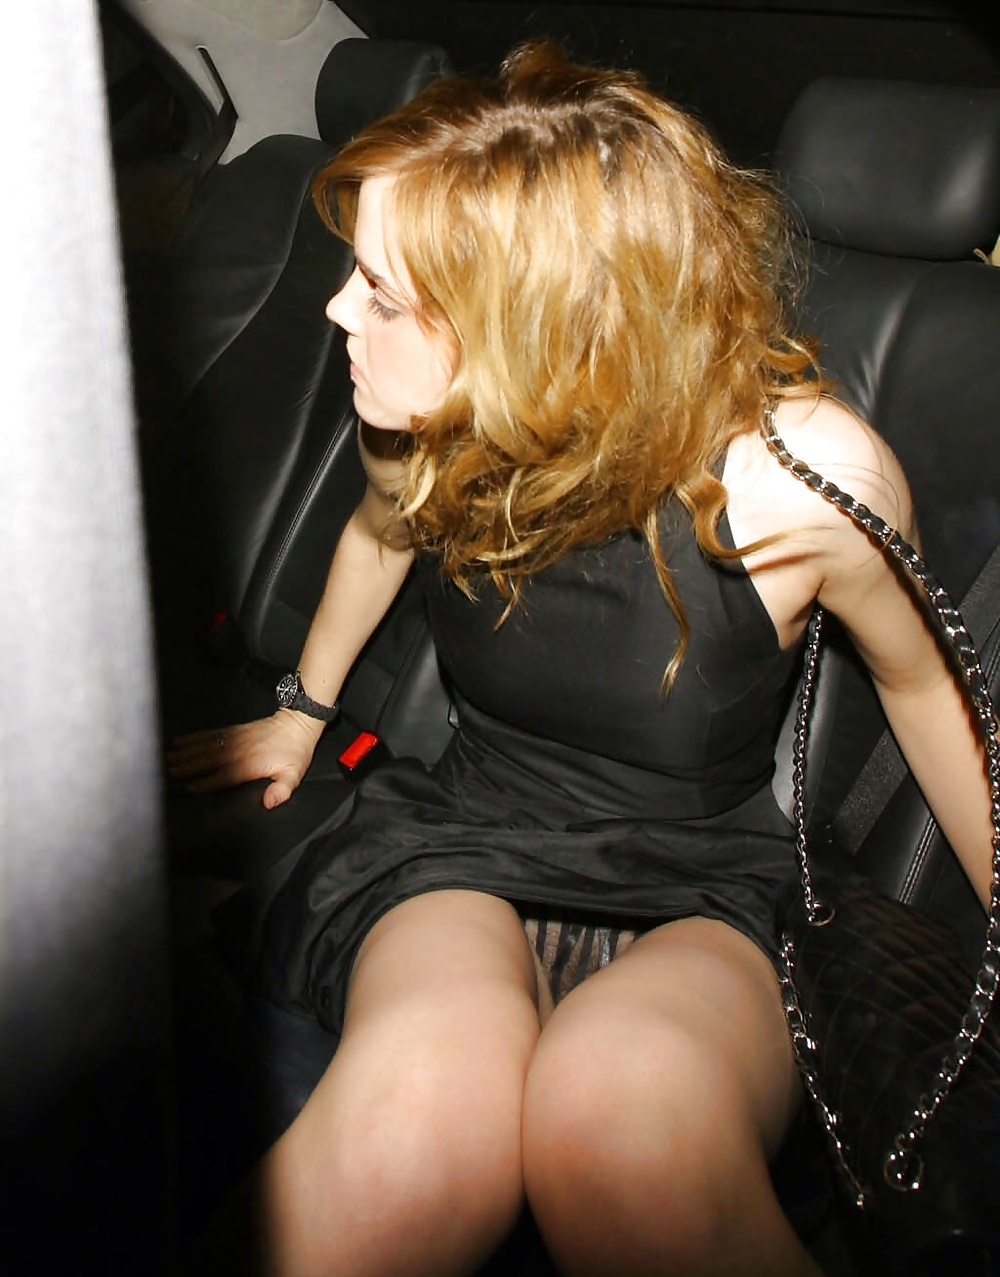 Emma watson hairy pussy for that